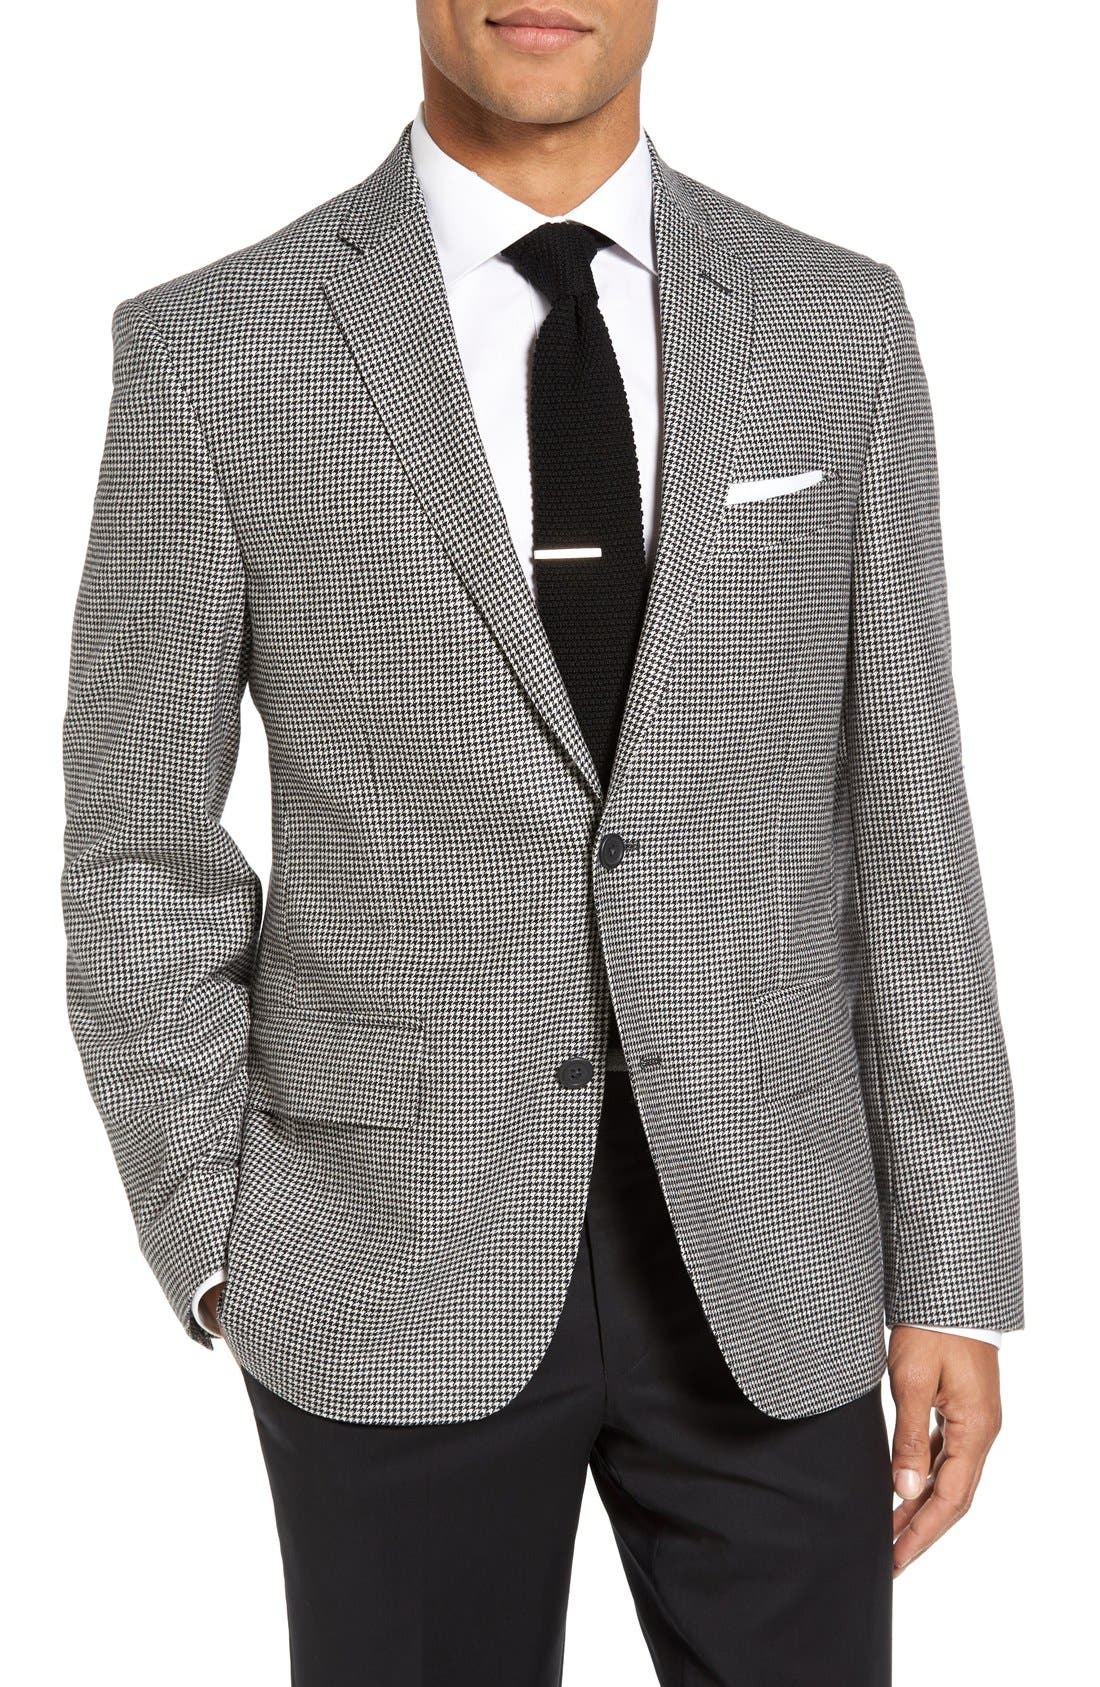 Main Image - Nordstrom Men's Shop Classic Fit Houndstooth Wool & Cashmere Sport Coat